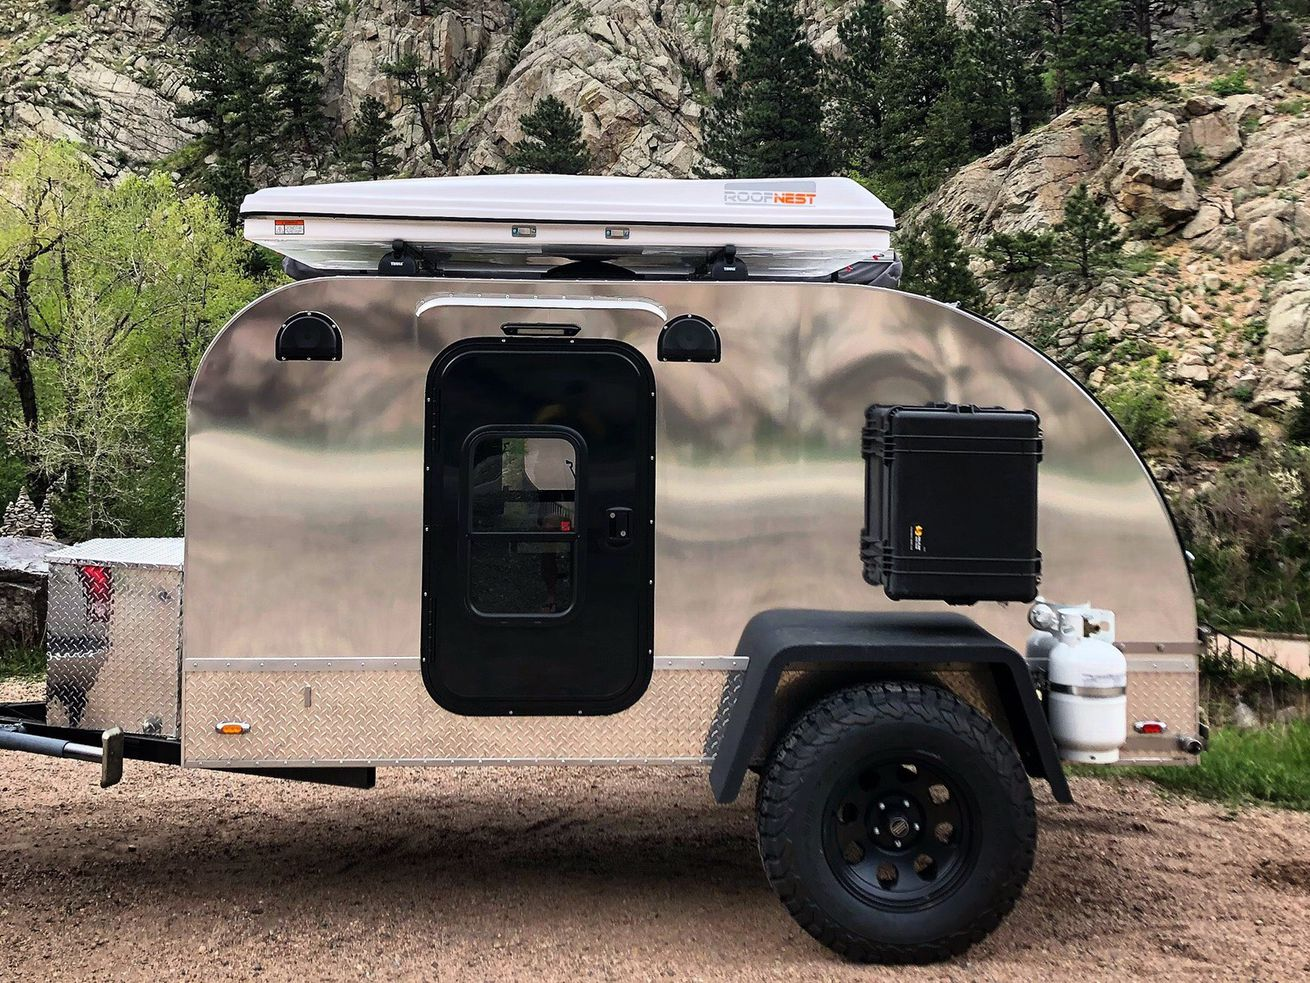 The Summit by Colorado Teardrops boasts a unique interior cabin that includes a bunkbed for kids.